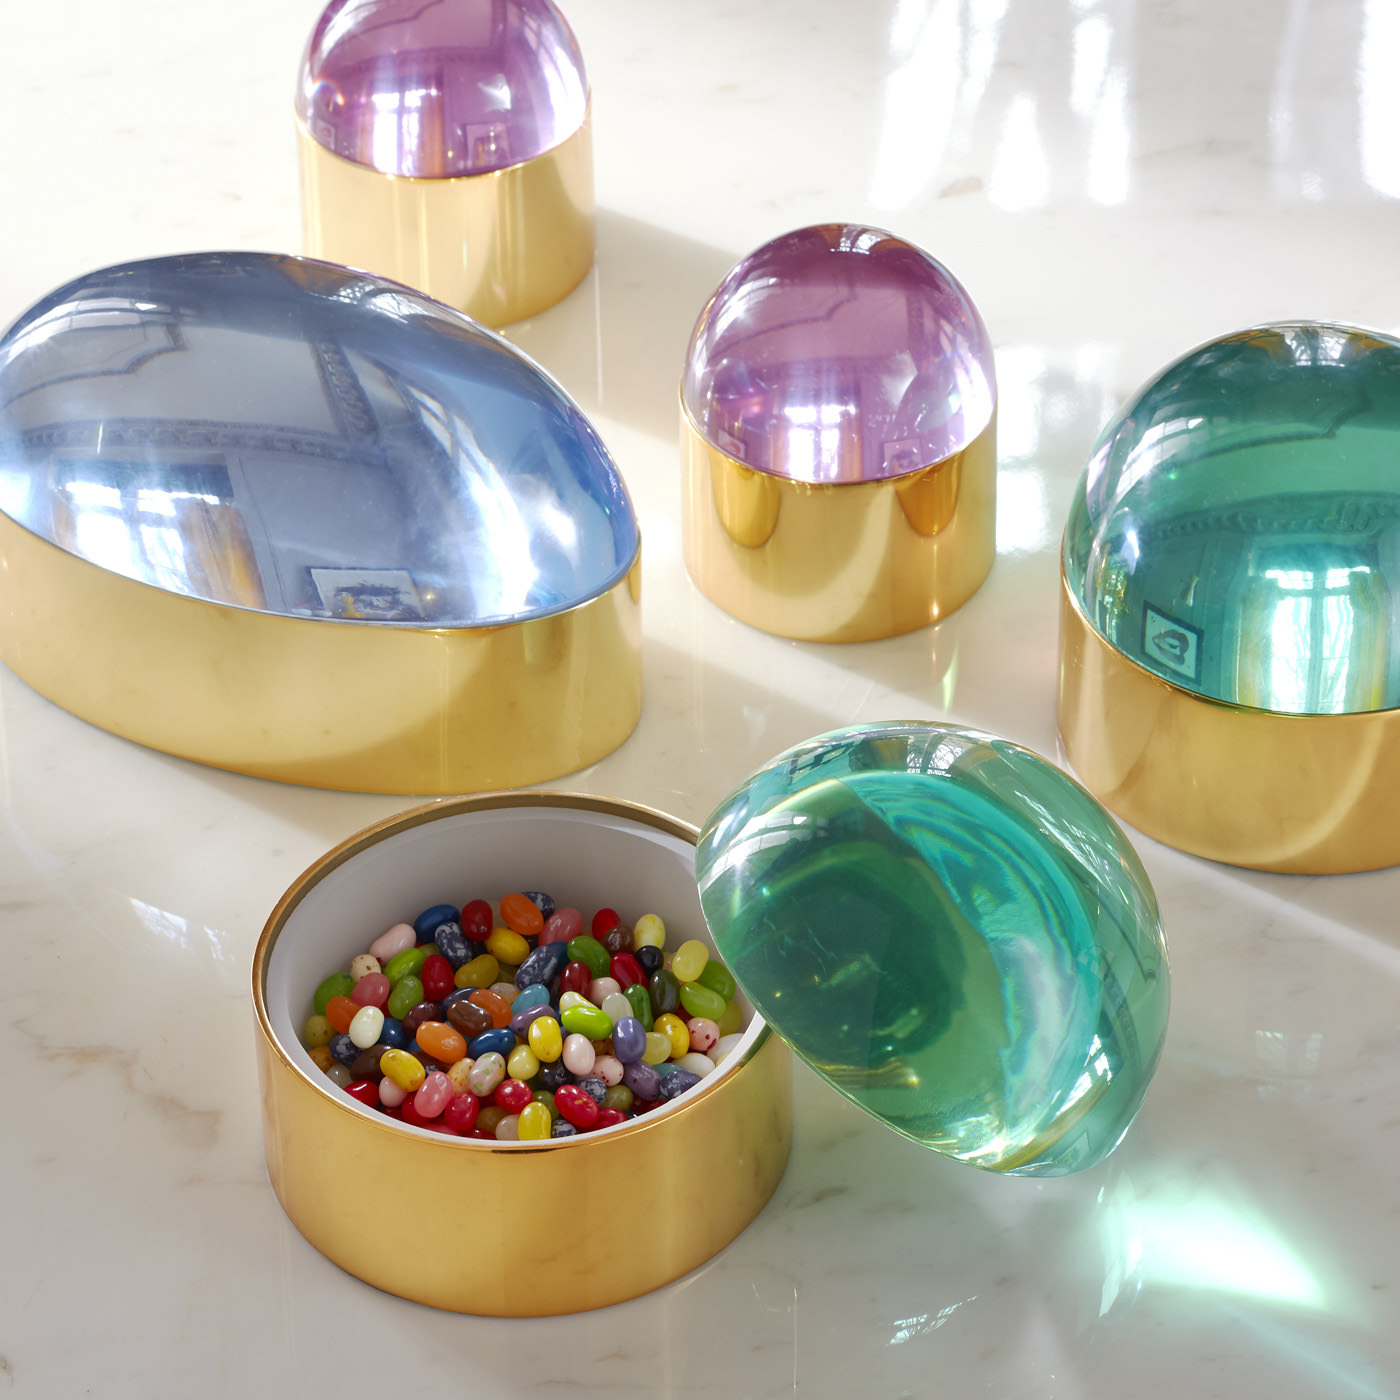 Globo Boxes from Jonathan Adler